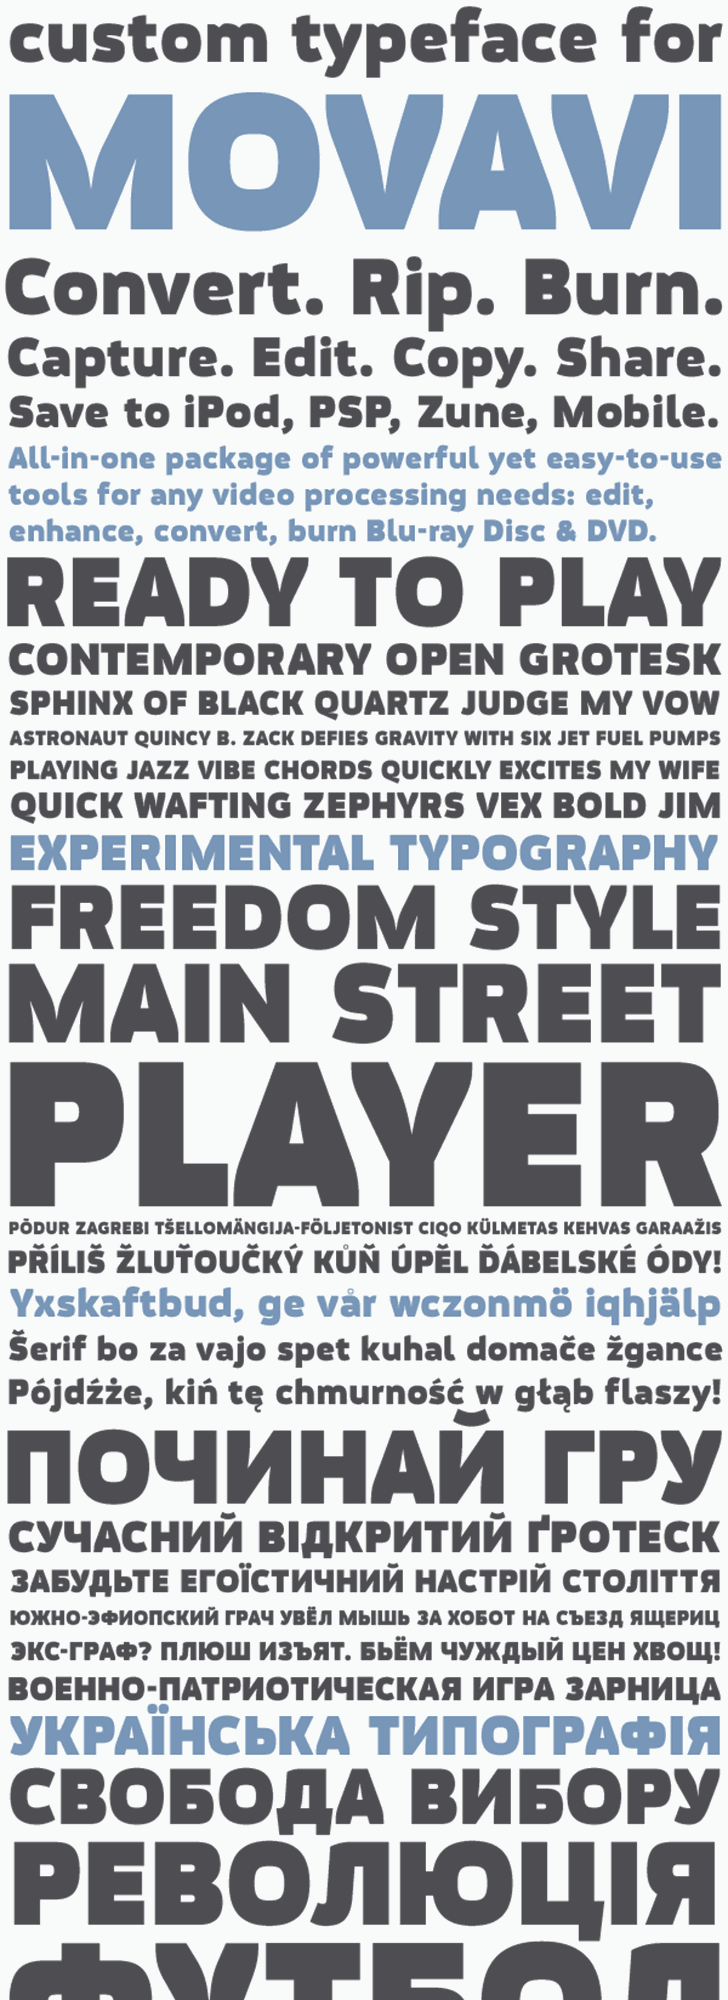 Movavi Grotesque Black font by 4th february